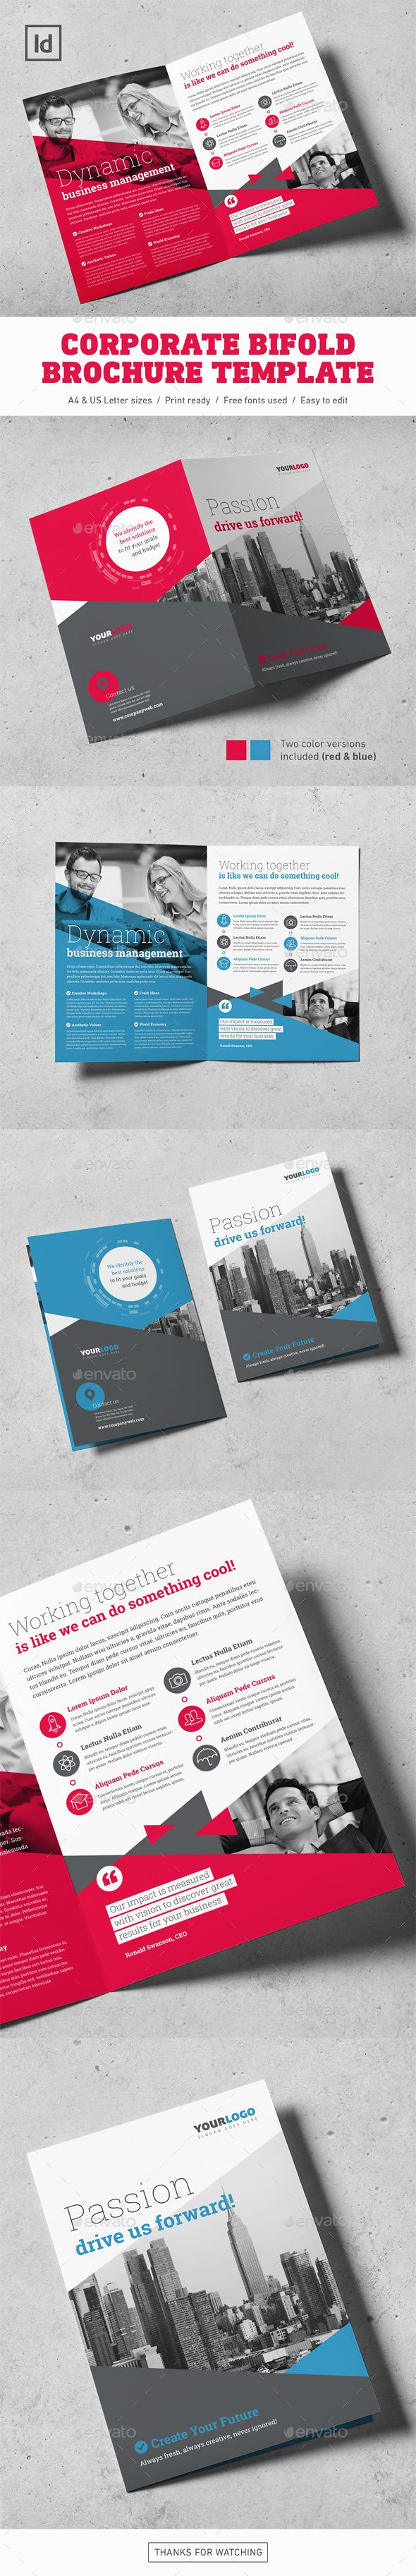 brochure template indesign indd 85x11 bi fold download httpsgraphicrivernetitemcorporate bifold brochure template 19037441refpxcr